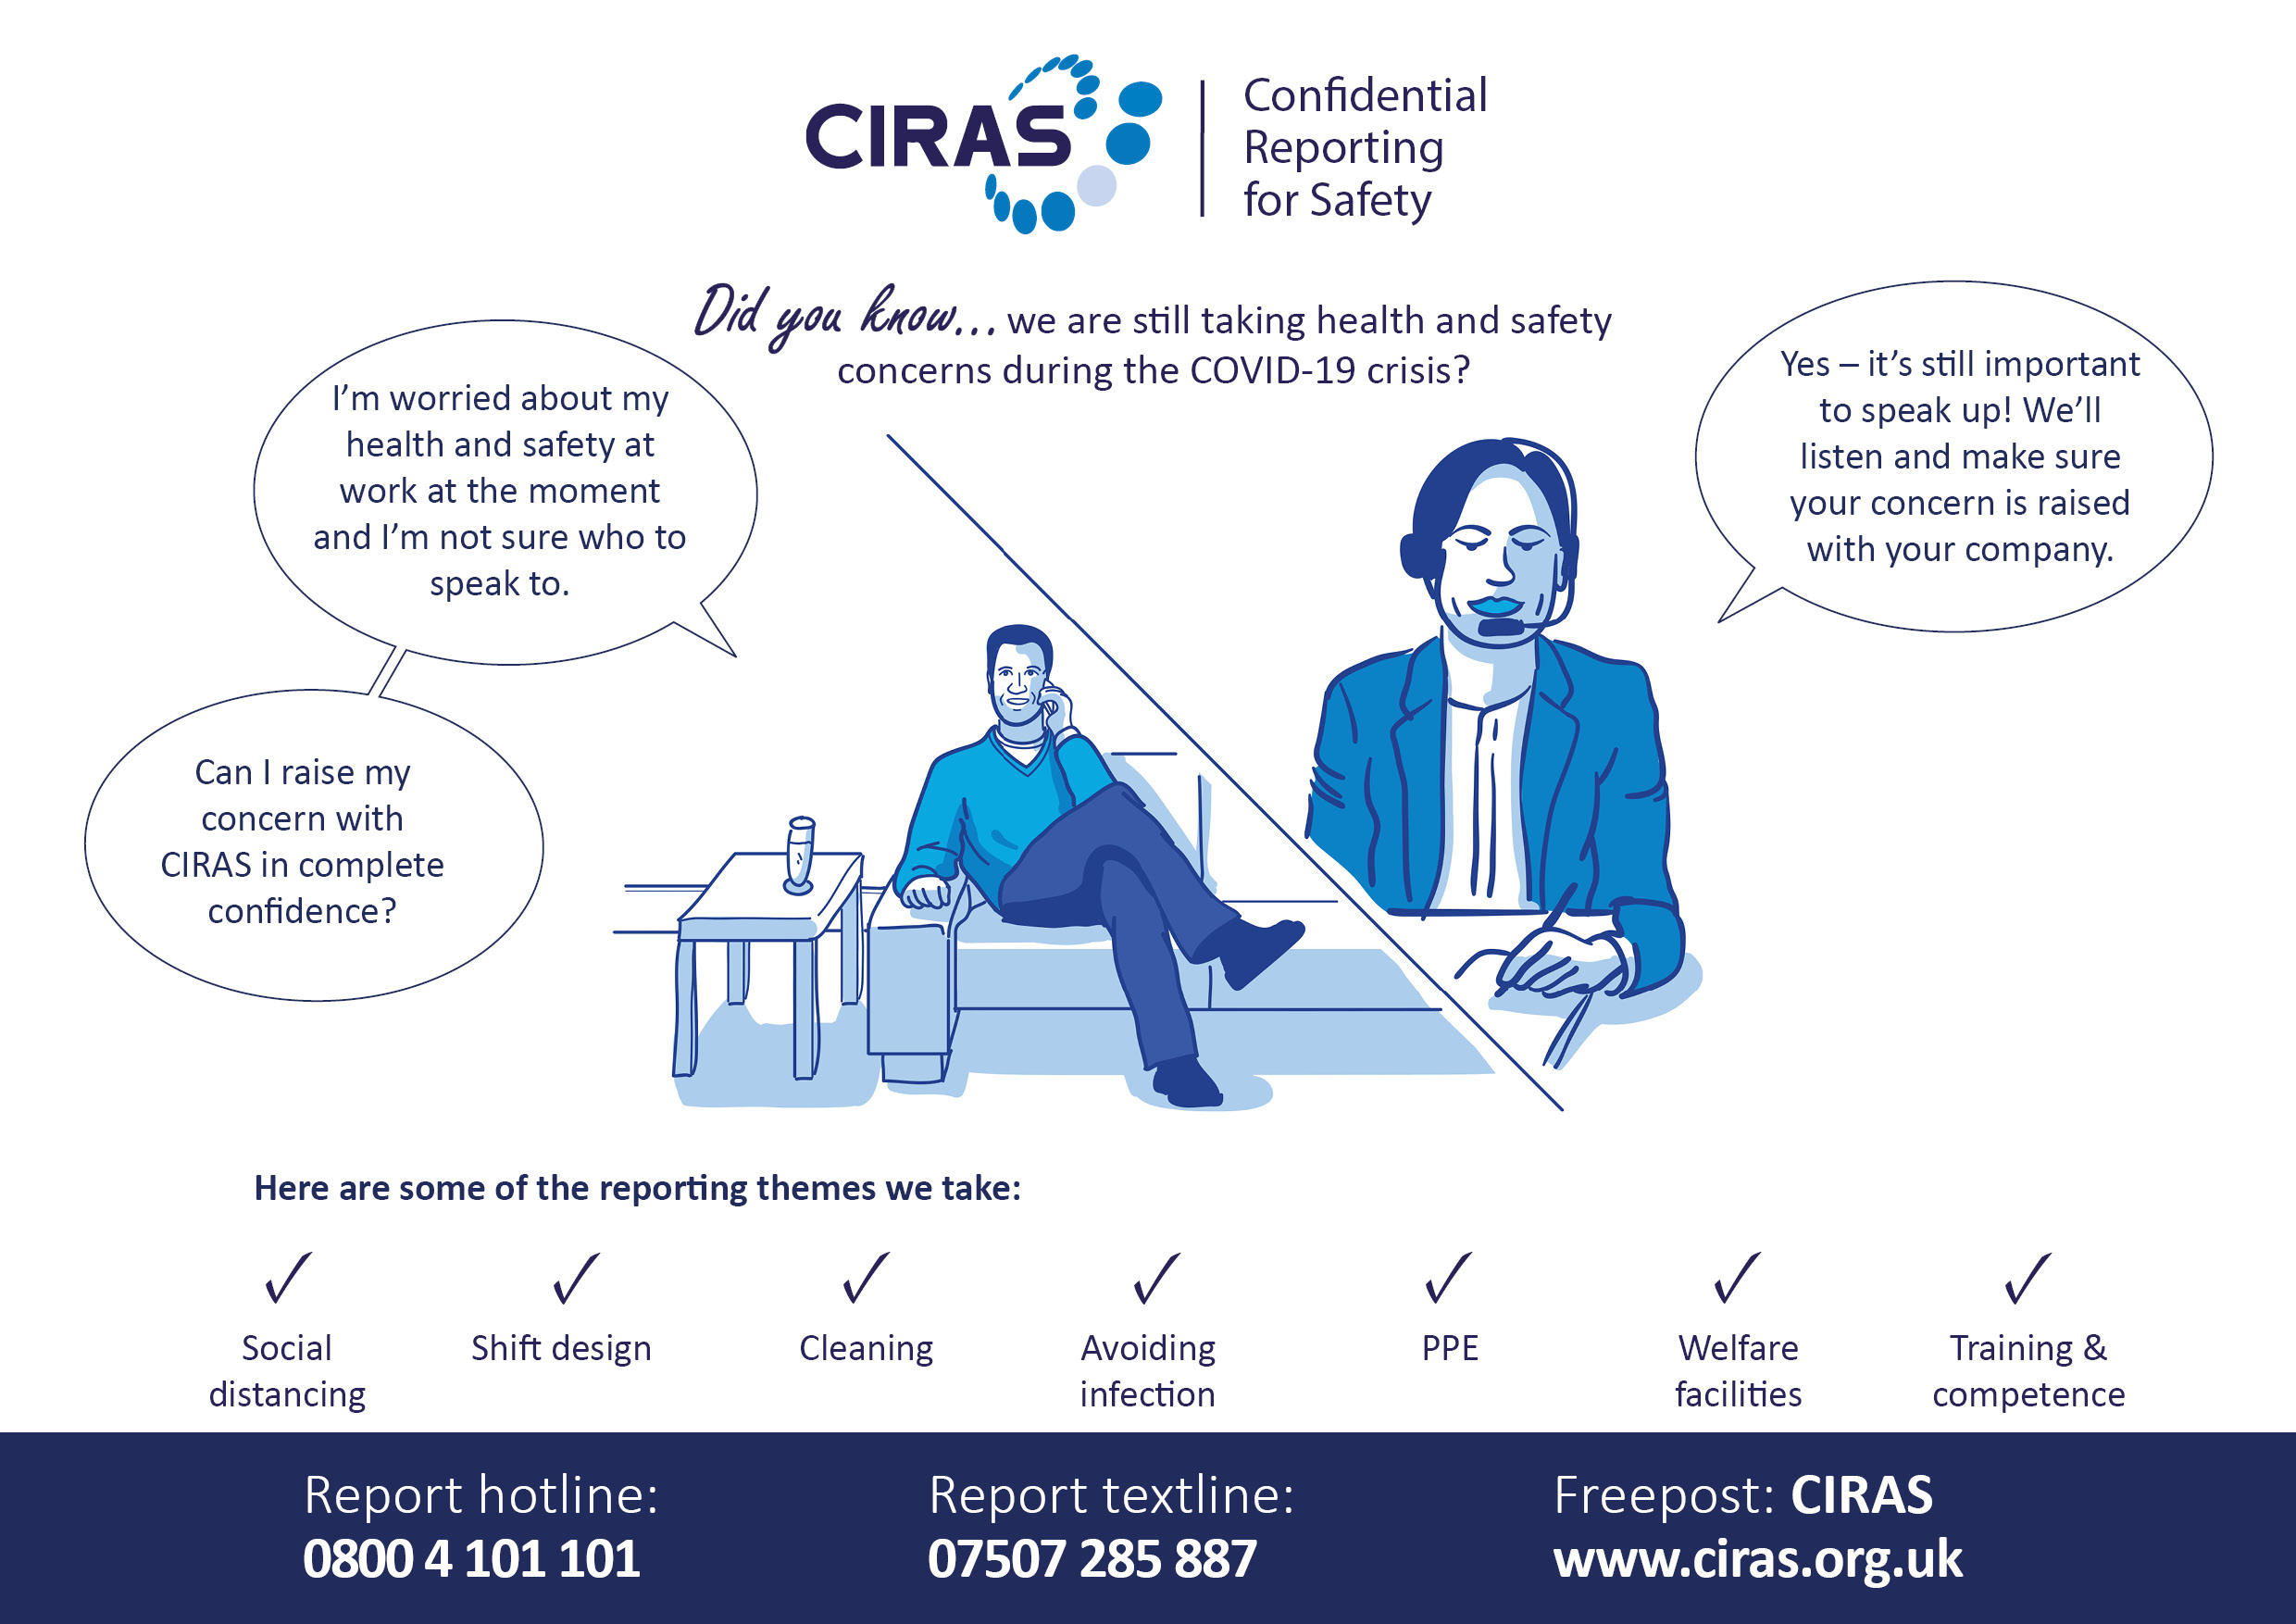 CIRAS poster showing reporting themes of social distancing, shift design, cleaning, avoiding infection, PPE, welfare facilities and training and competence.